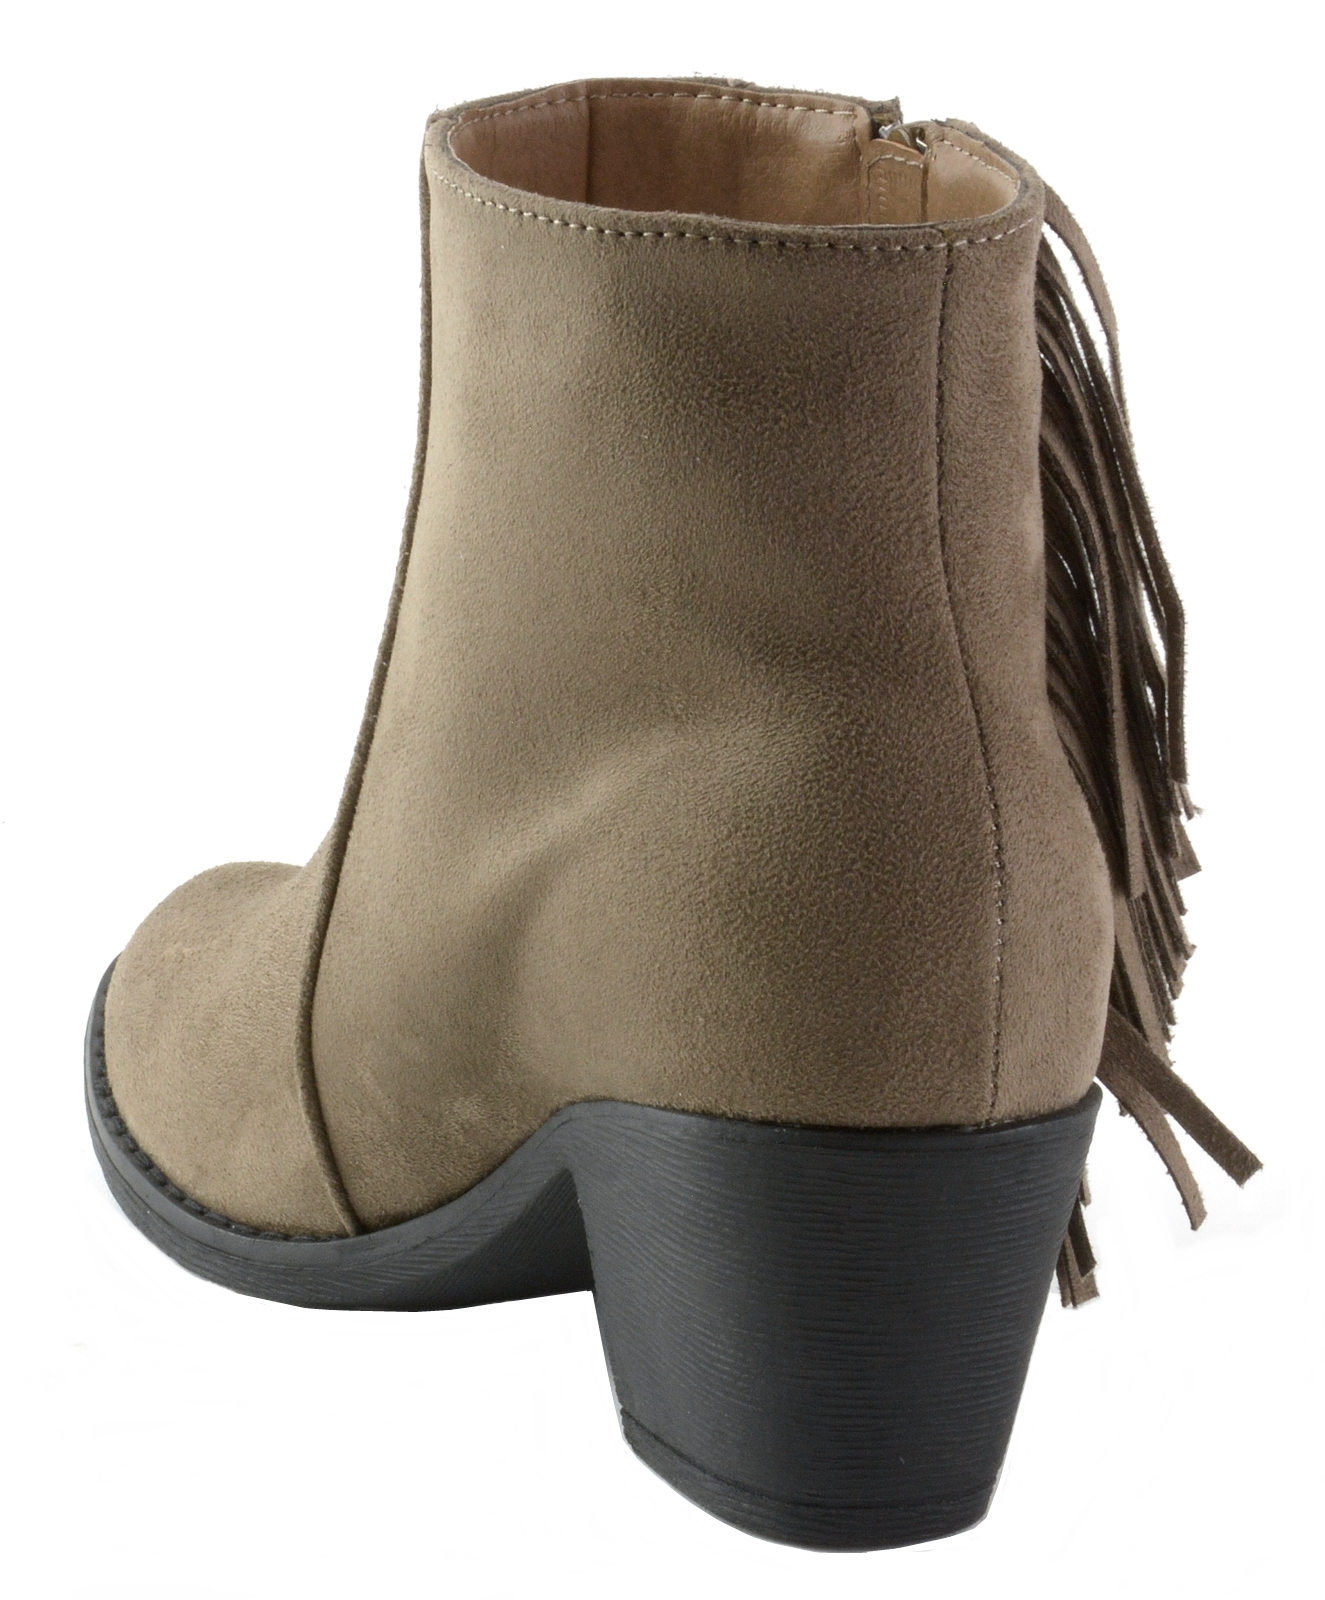 Alpine-Swiss-Arosa-Womens-Ankle-Boots-Fringe-Shoes-Block-High-Heel-Micro-Suede thumbnail 23